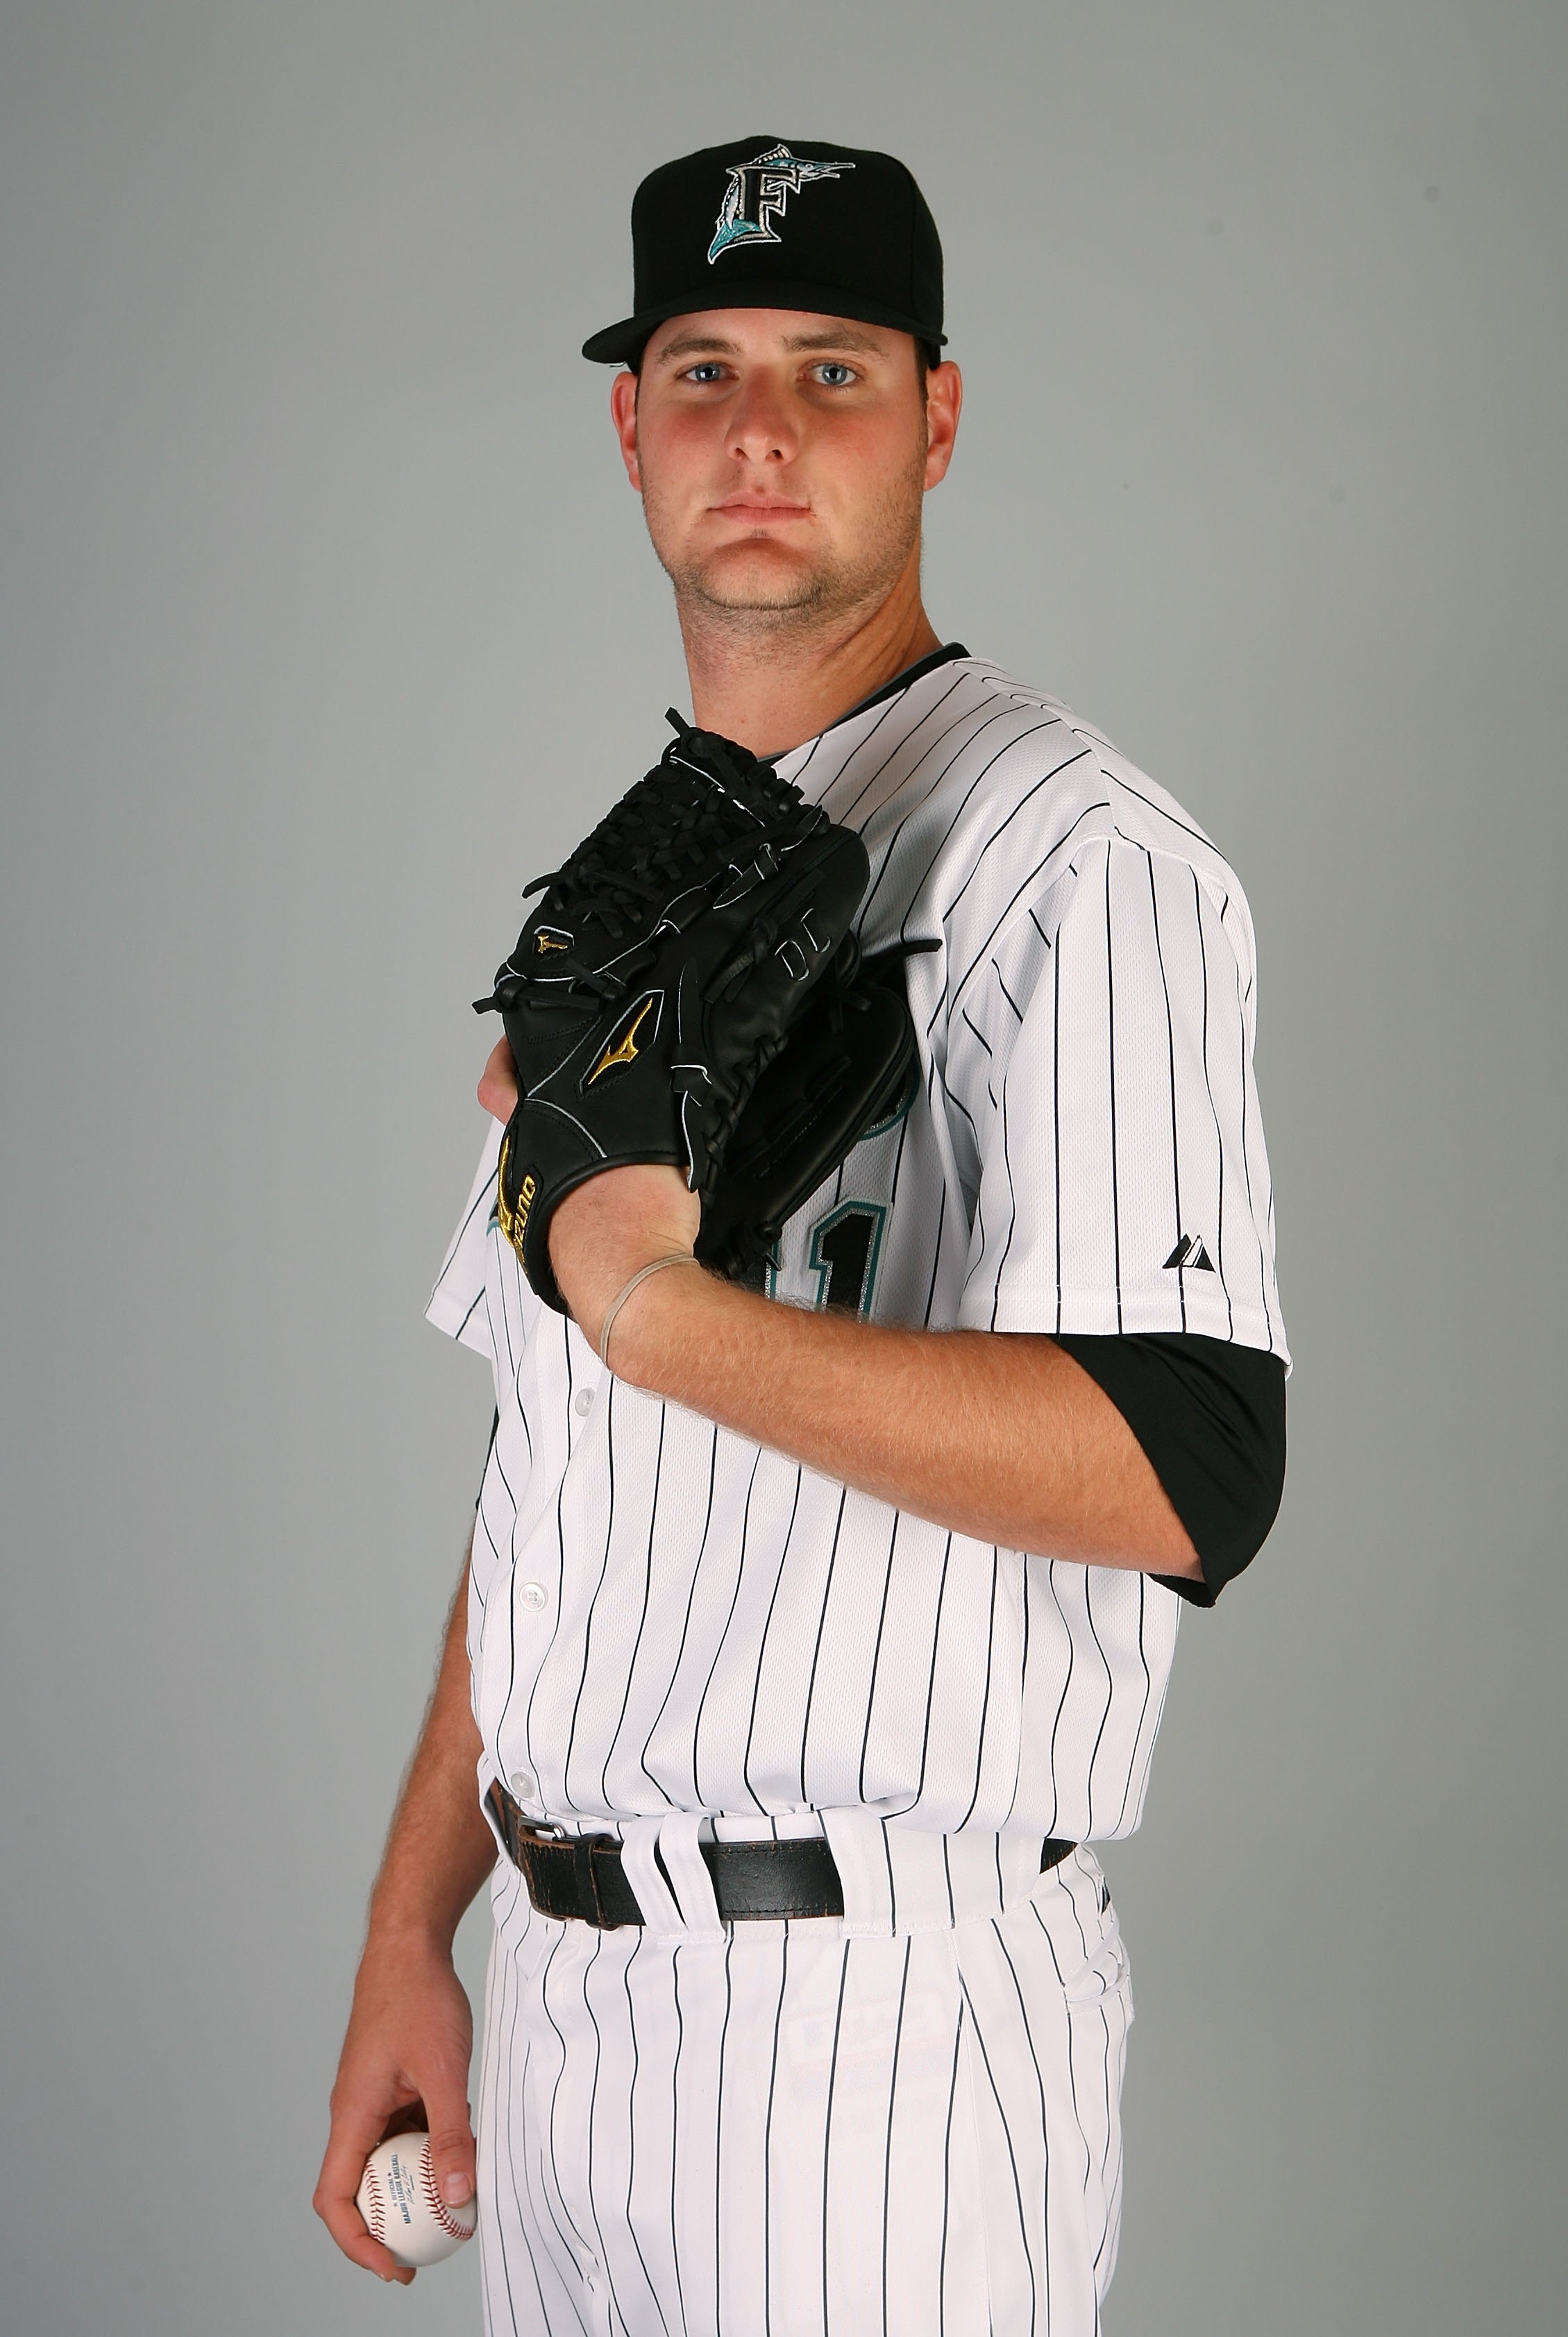 JUPITER, FL - MARCH 02:  Pitcher Chris Volstad #41 of the Florida Marlins poses during photo day at Roger Dean Stadium on March 2, 2010 in Jupiter, Florida.  (Photo by Doug Benc/Getty Images)